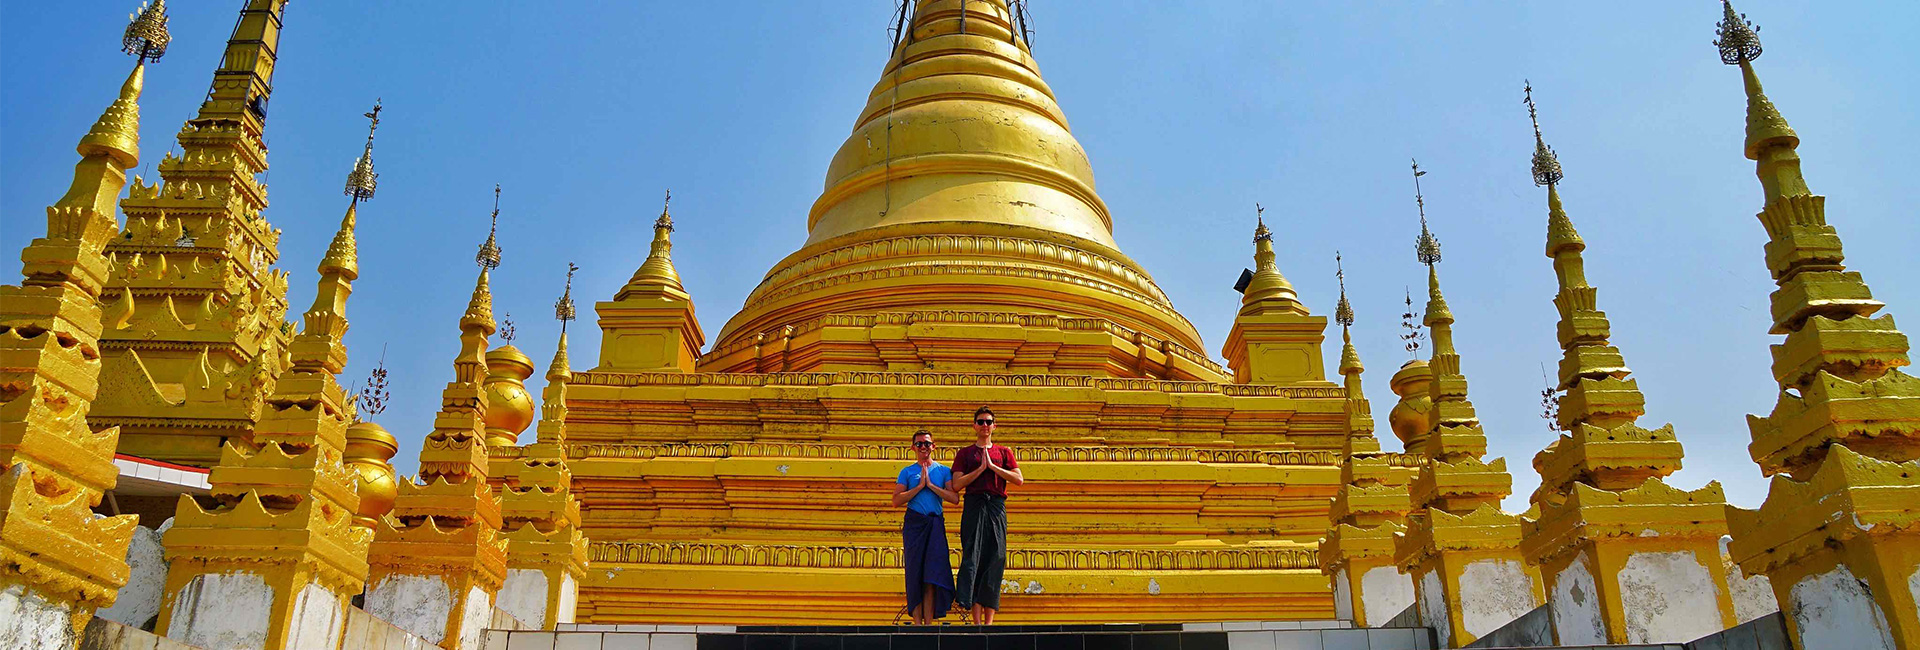 Things you should know before traveling to Mandalay Myanmar